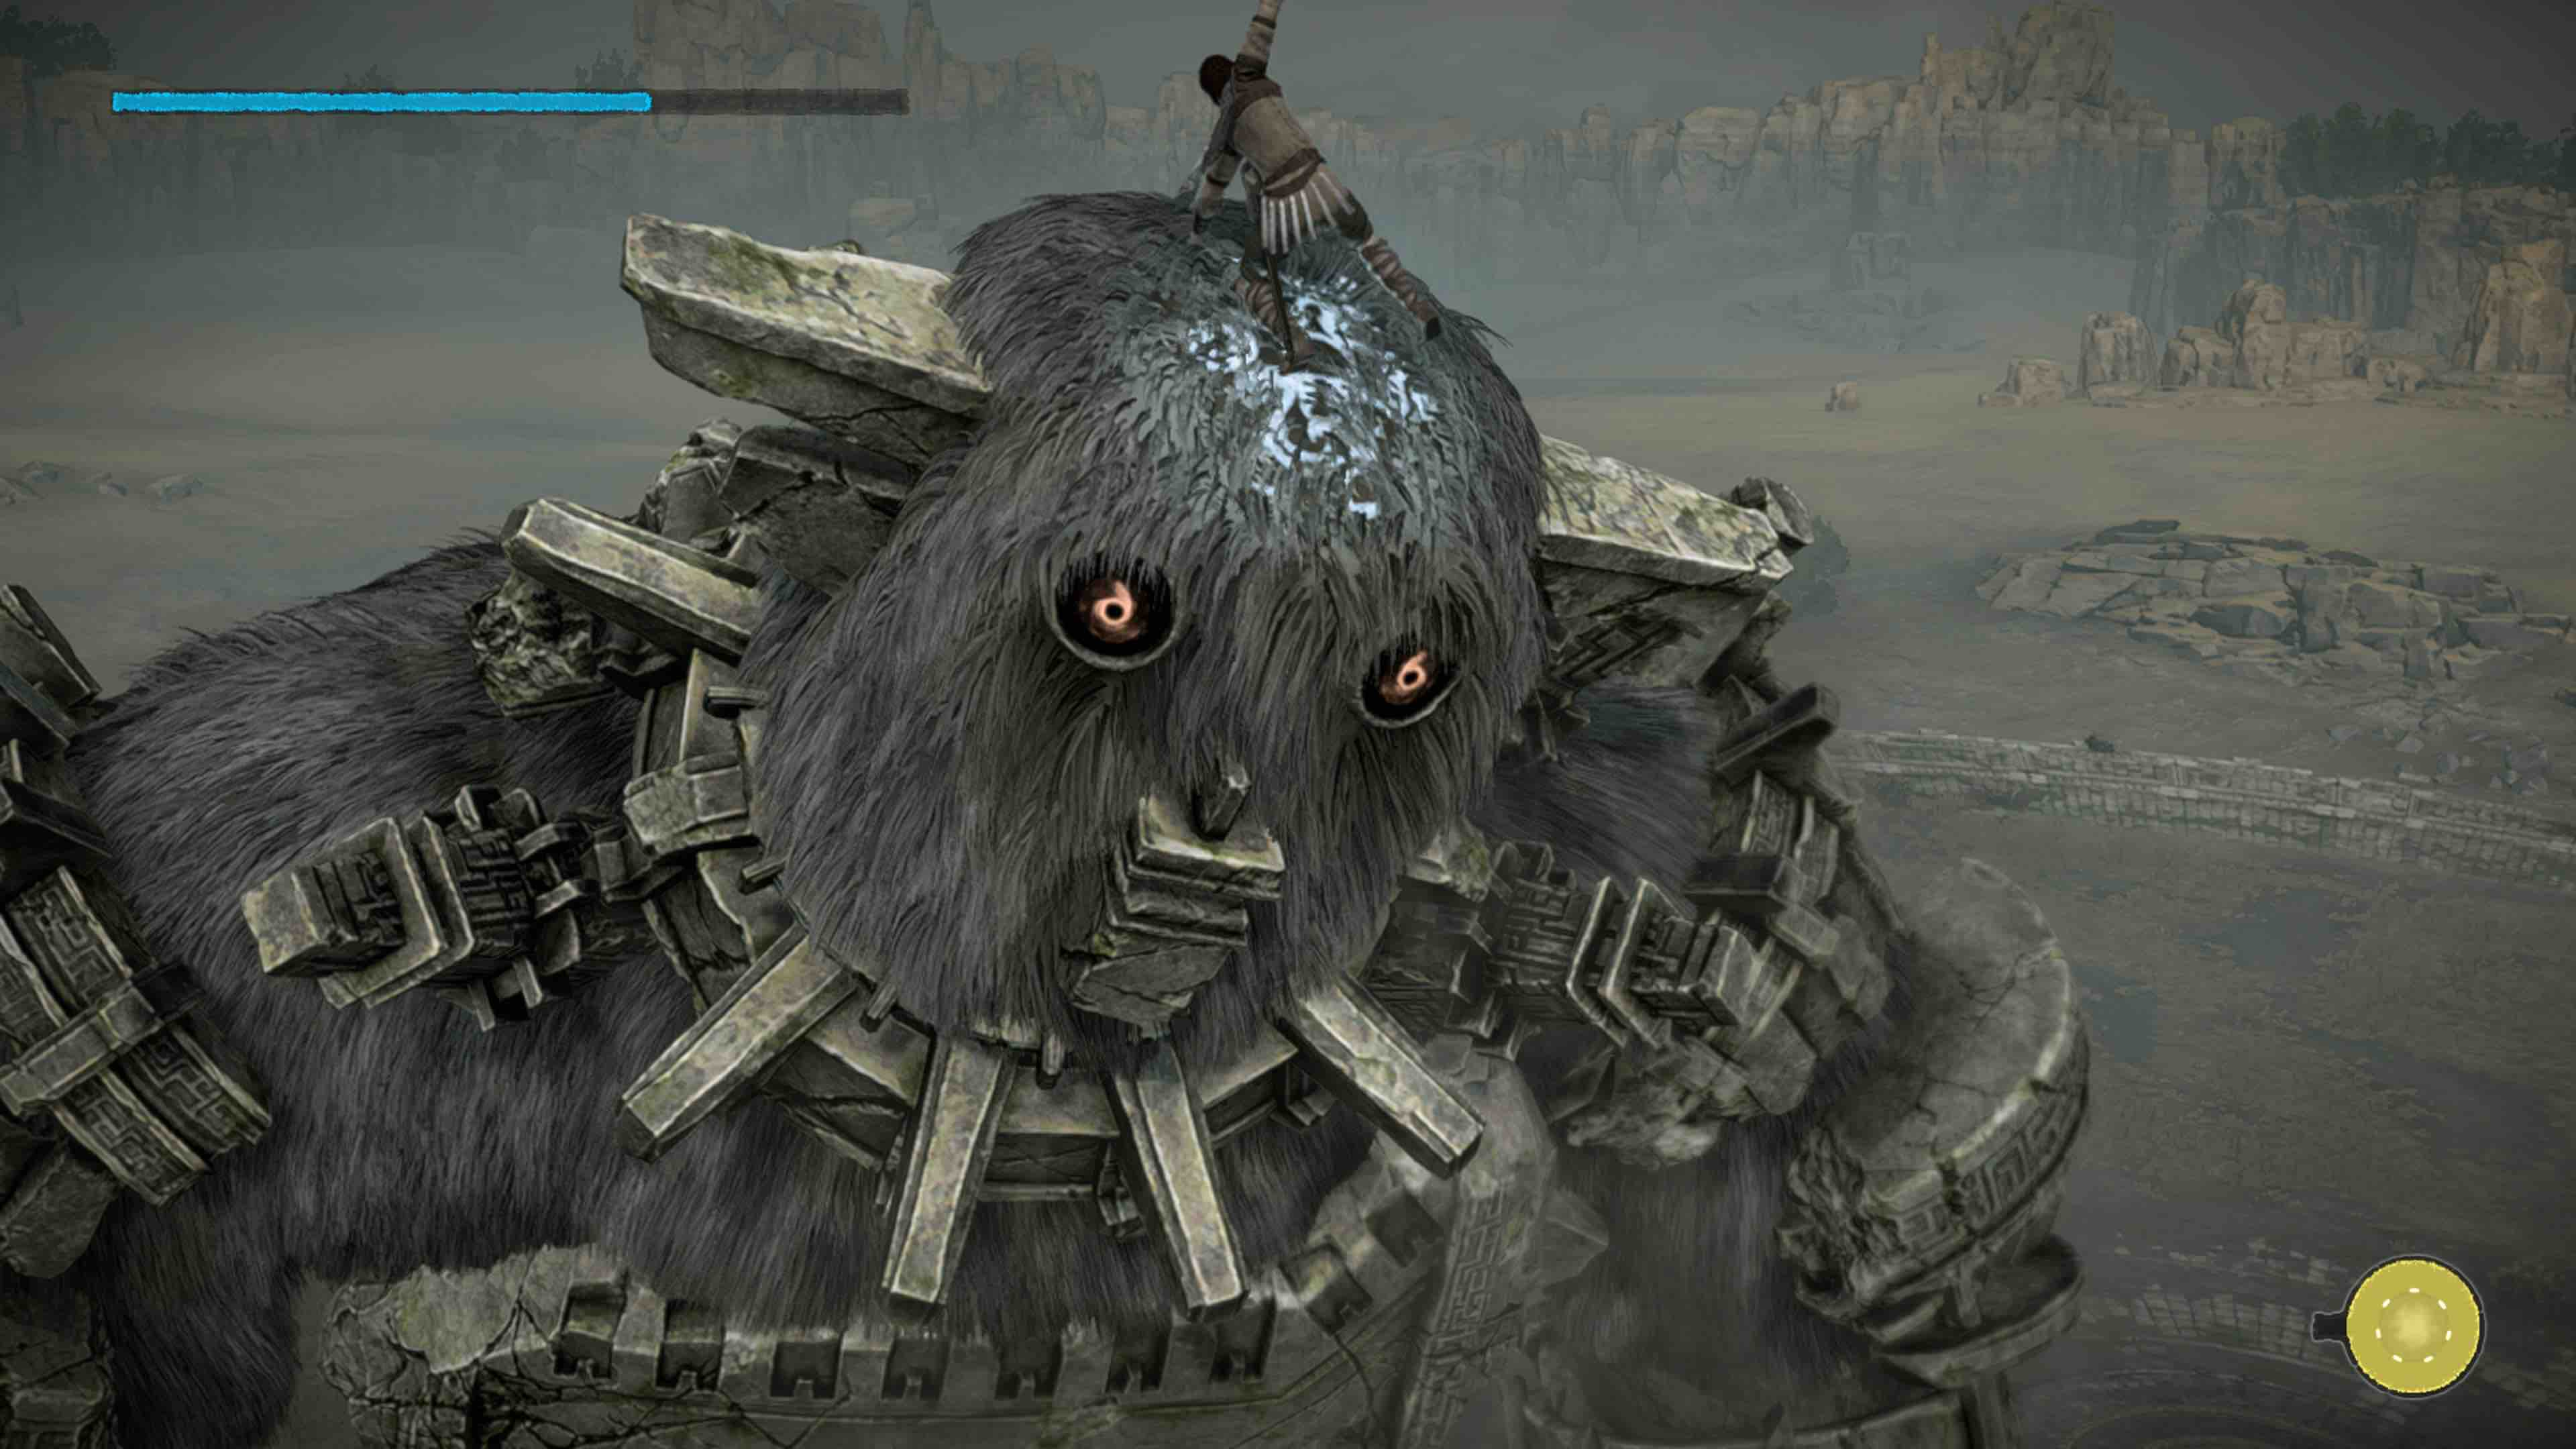 Shadow_of_the_Colossus_Avance_10